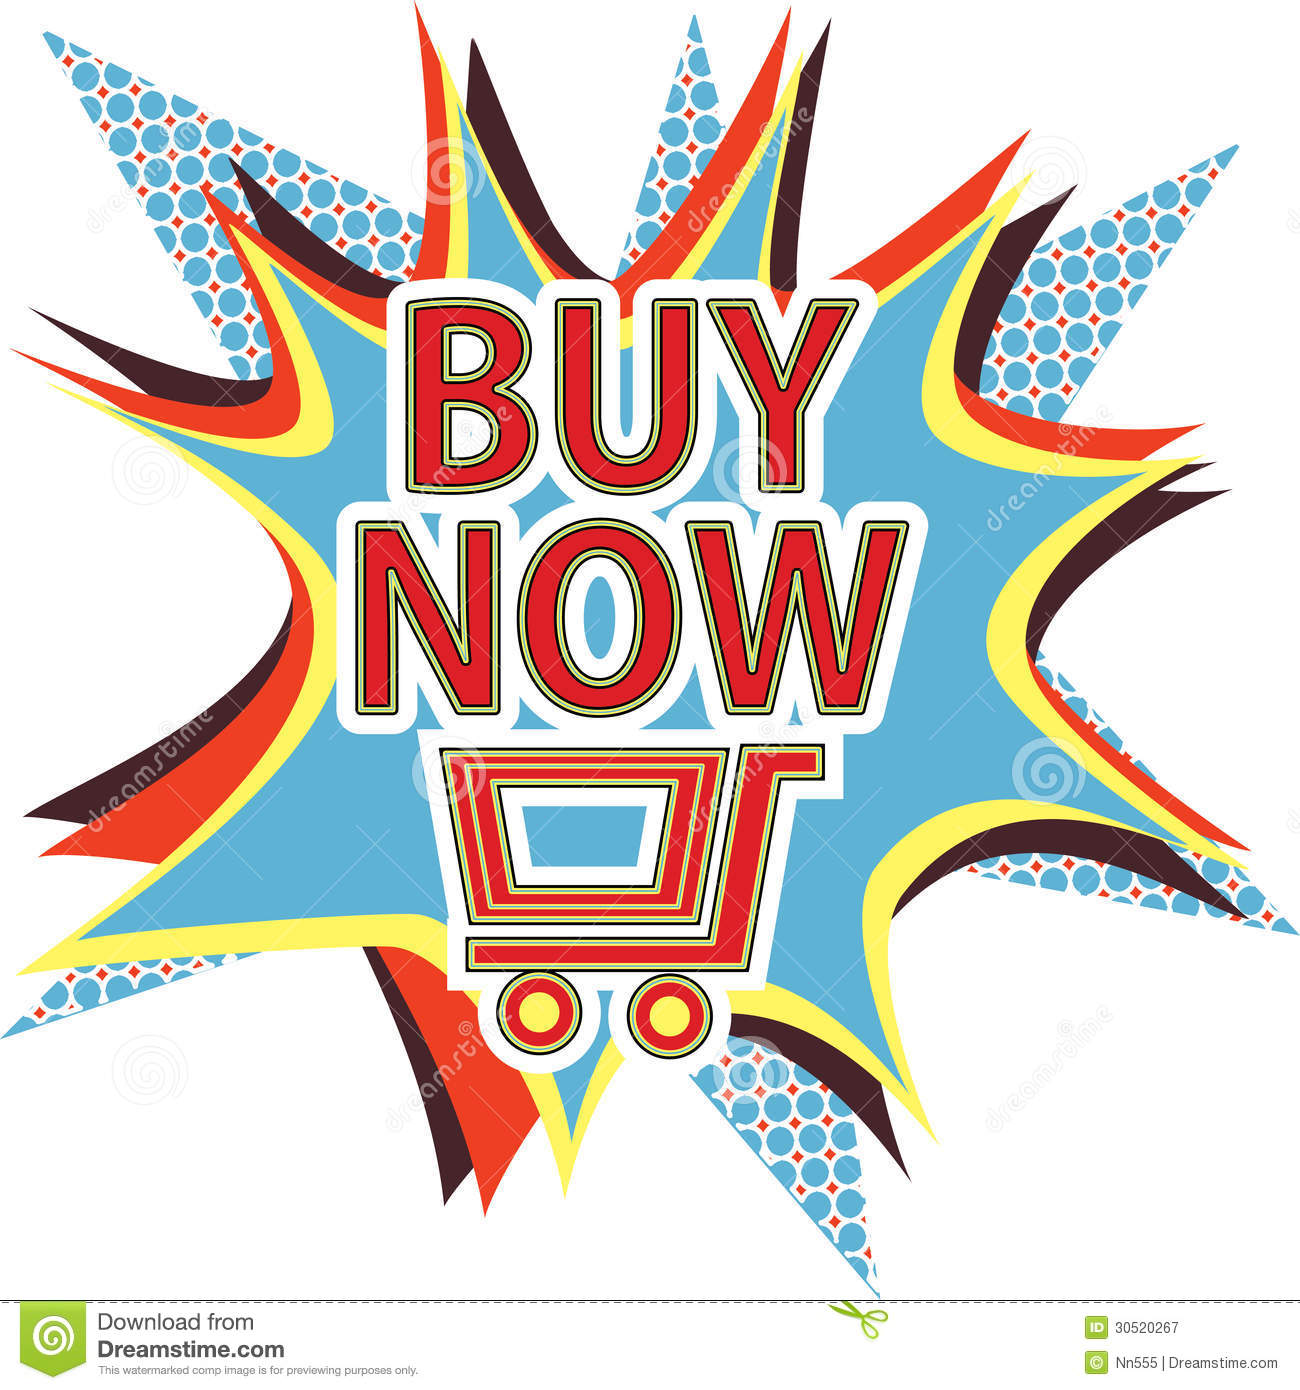 Buy This Now: Buy Now Sign Royalty Free Stock Photography